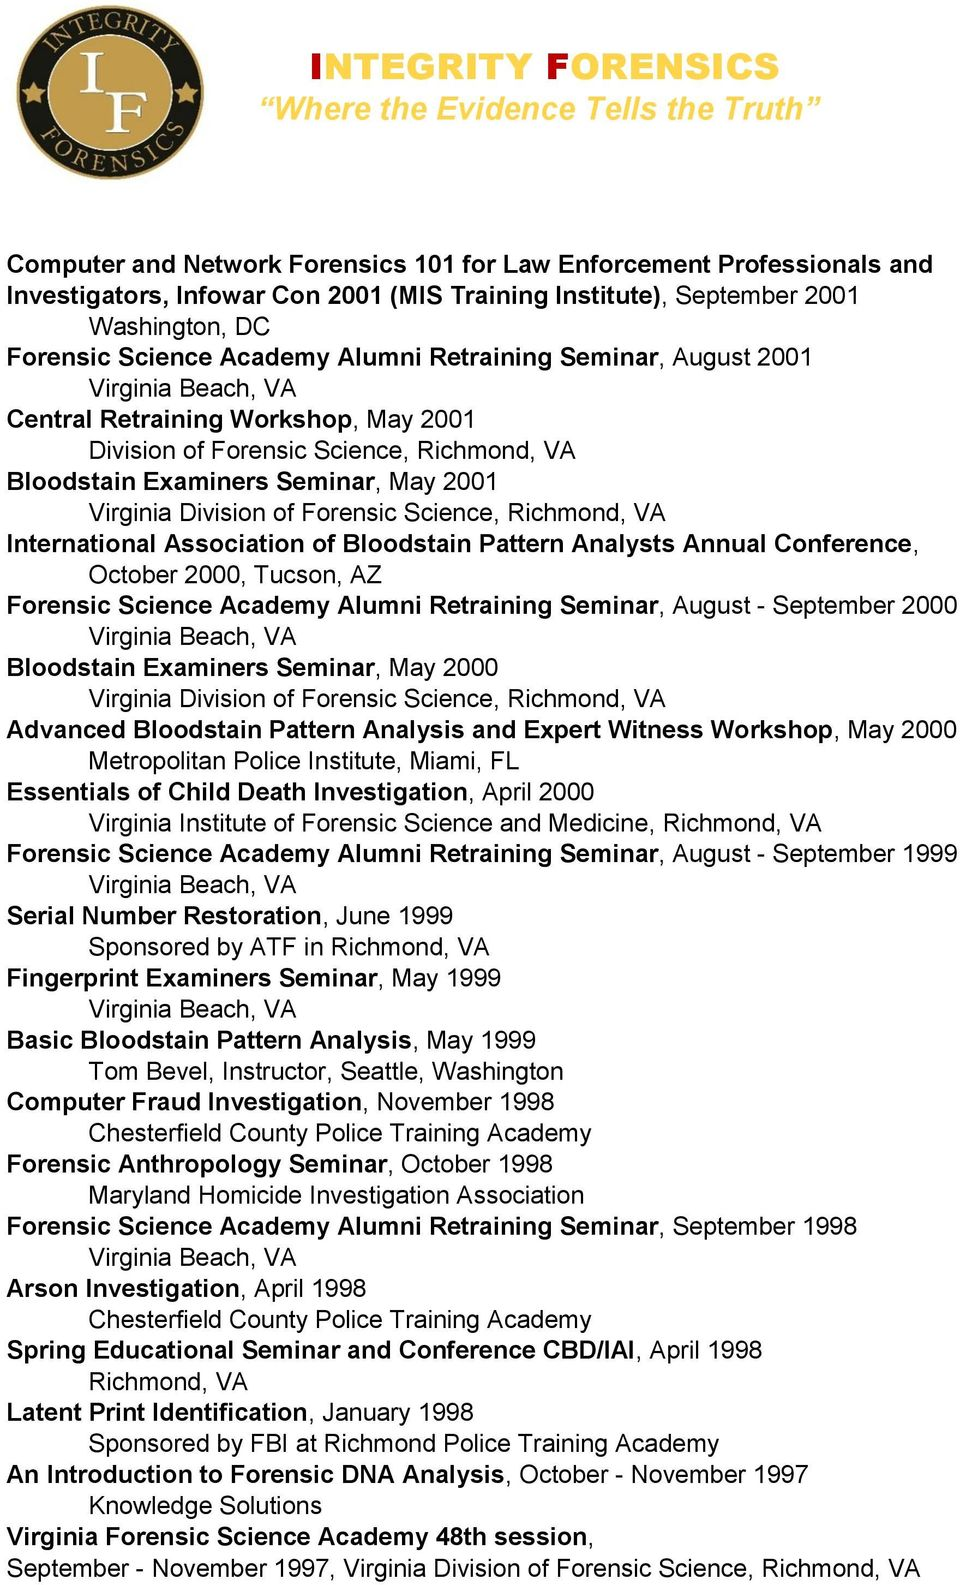 October 2000, Tucson, AZ Forensic Science Academy Alumni Retraining Seminar, August - September 2000 Bloodstain Examiners Seminar, May 2000 Virginia Advanced Bloodstain Pattern Analysis and Expert